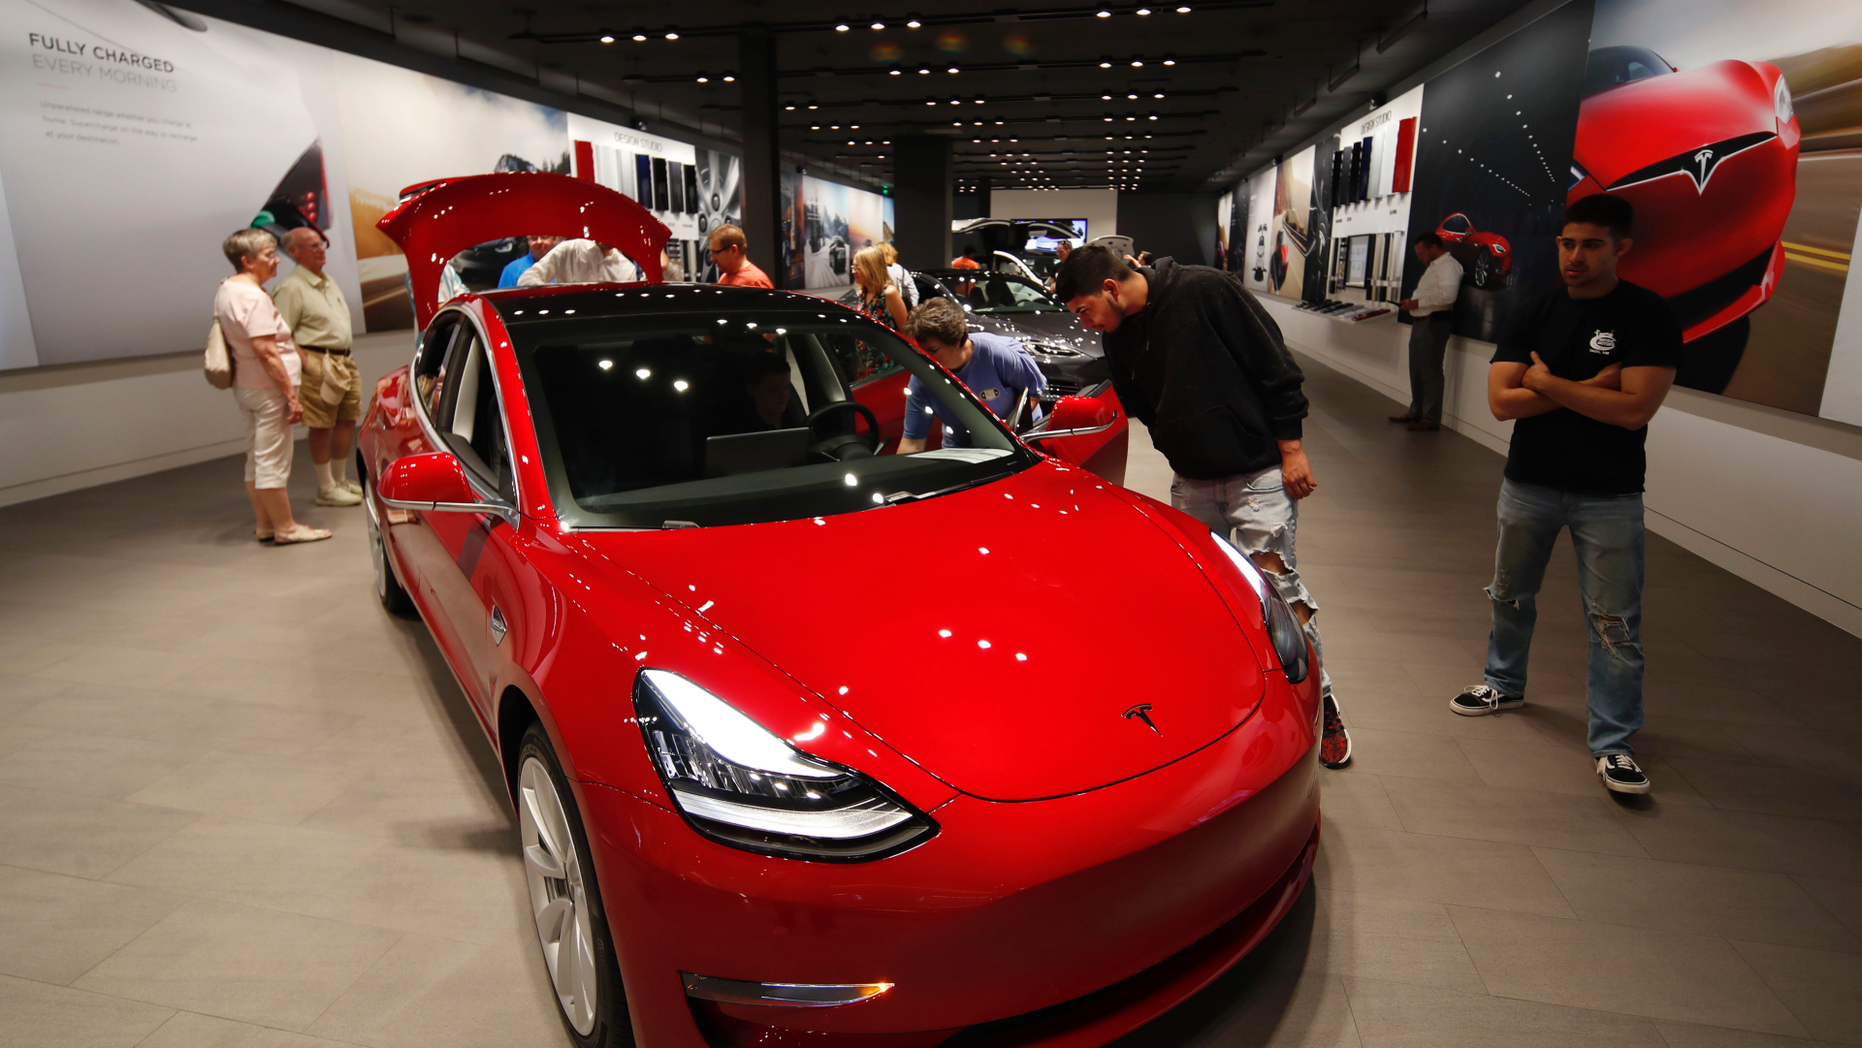 Tesla says it'll keep more stores open and raise auto prices